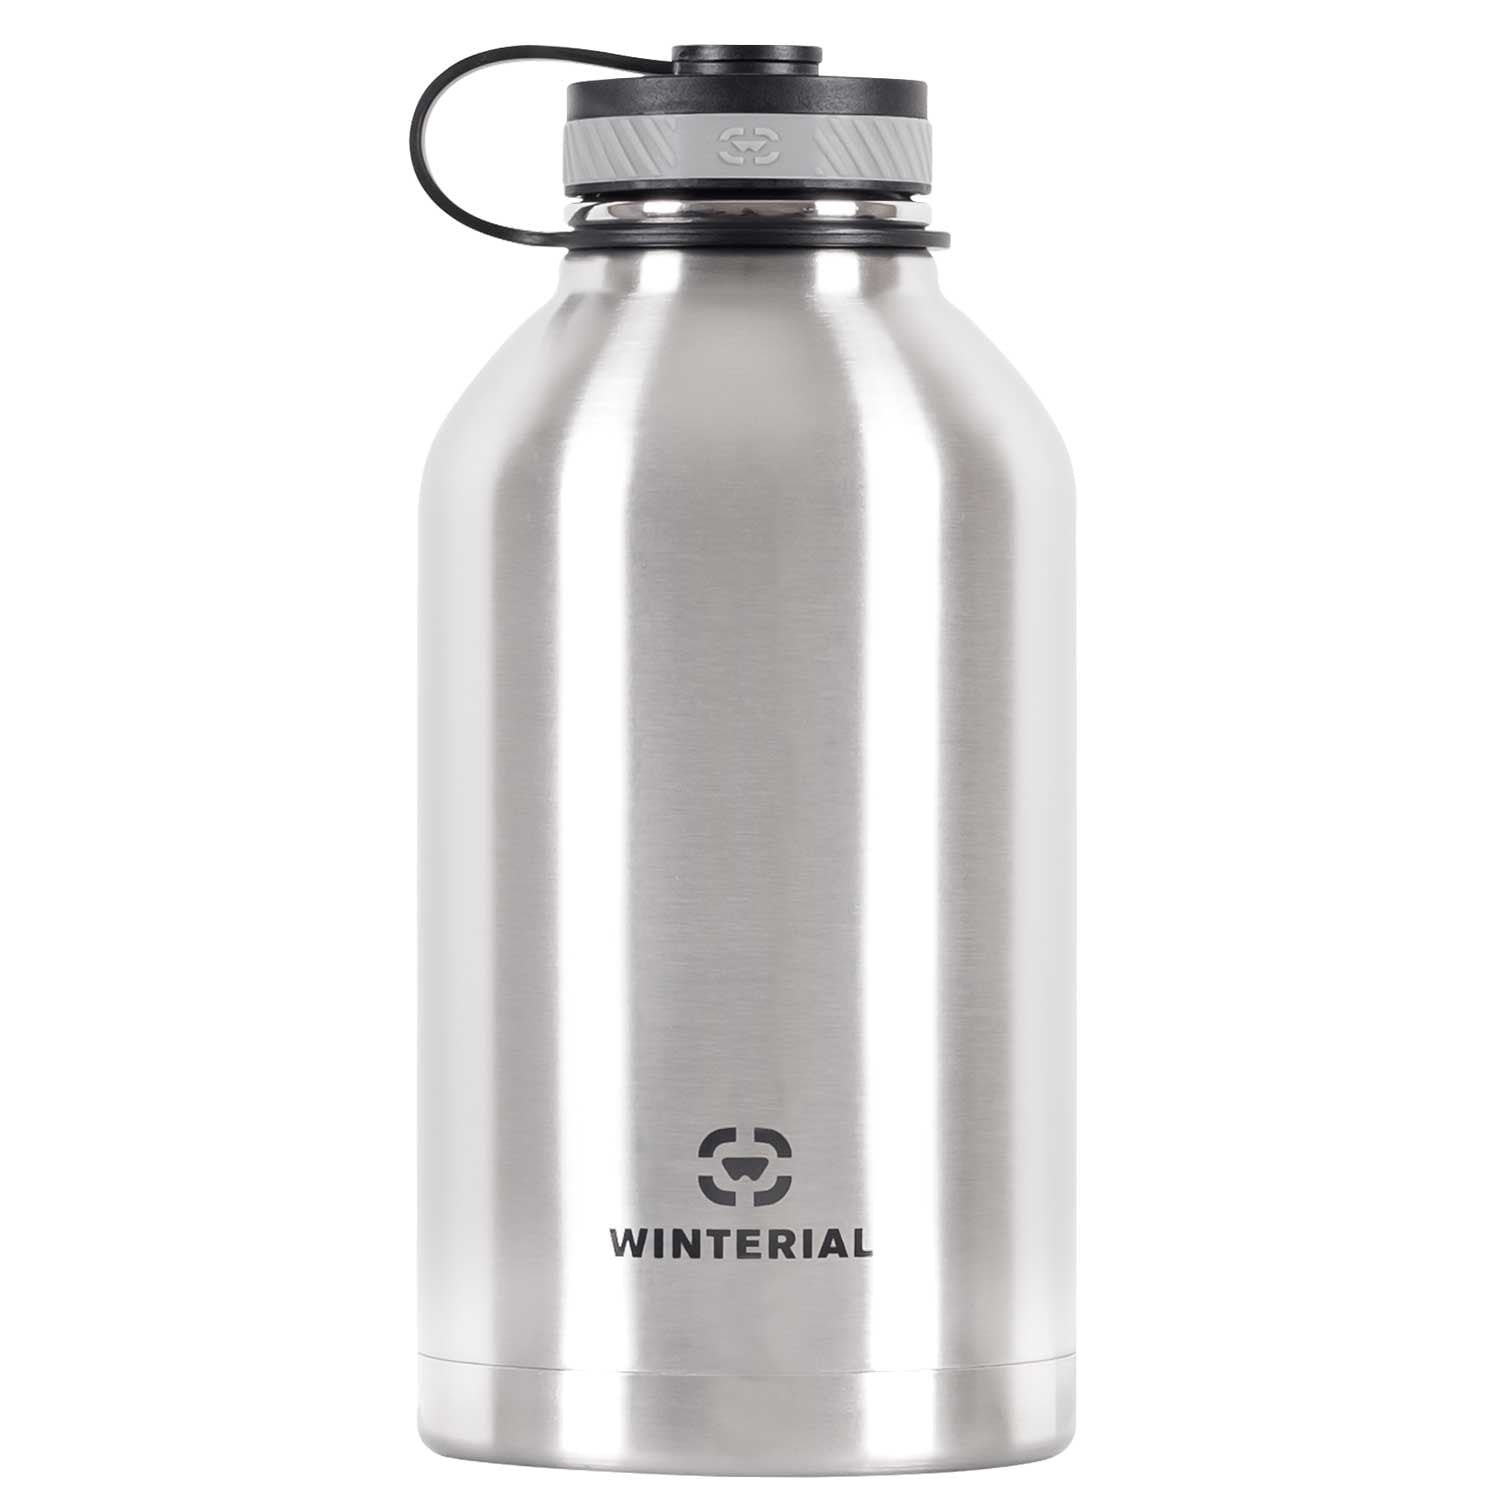 Winterial 64 oz Insulated Steel Water Bottle and Beer Growler. Double Walled Thermos Flask - Thumbnail 0